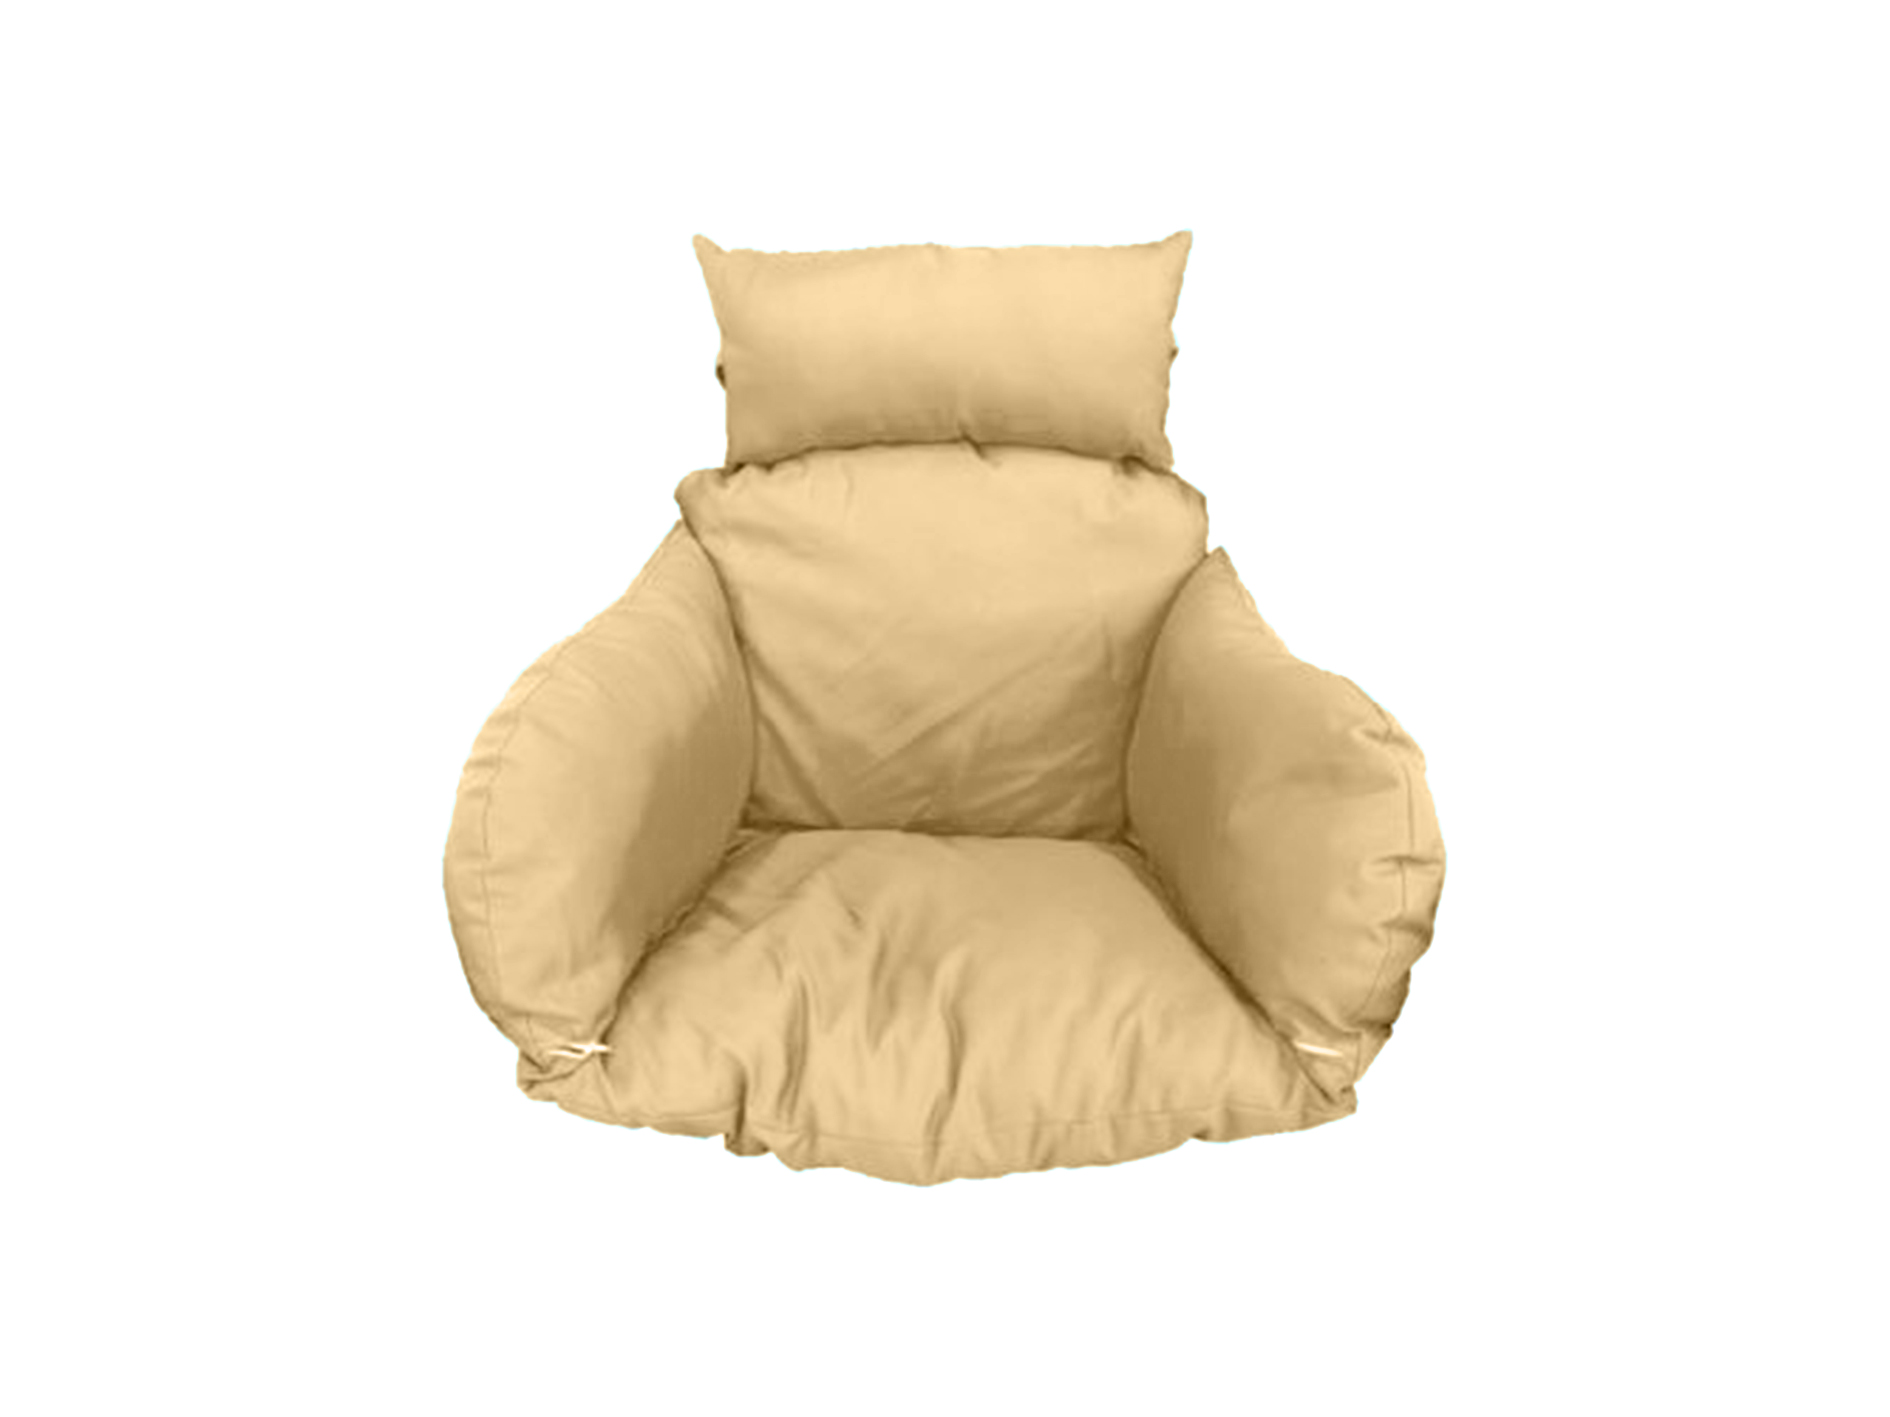 Brand New Replacement Cushions for Swinging Egg Chairs (CUSHION ONLY) CREAM